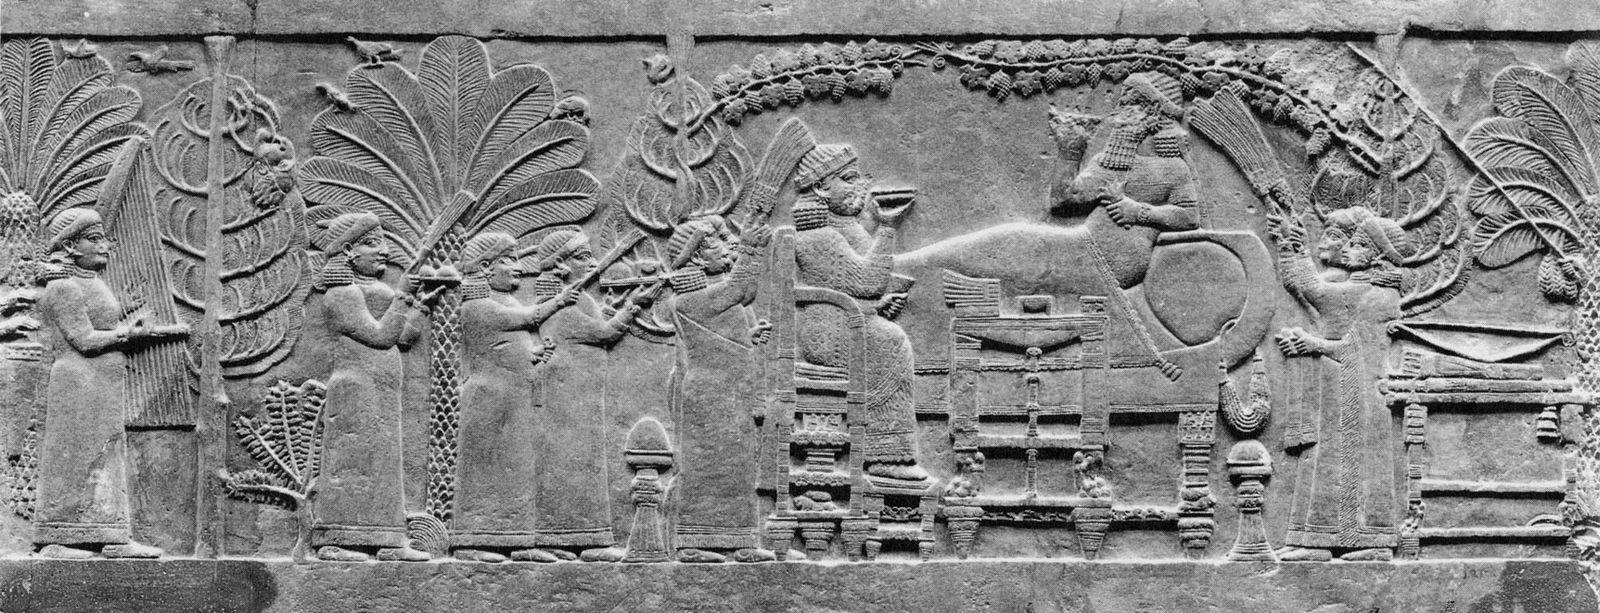 Motif Relief Whose Motif Is It Representations Of The Ancient Near East In